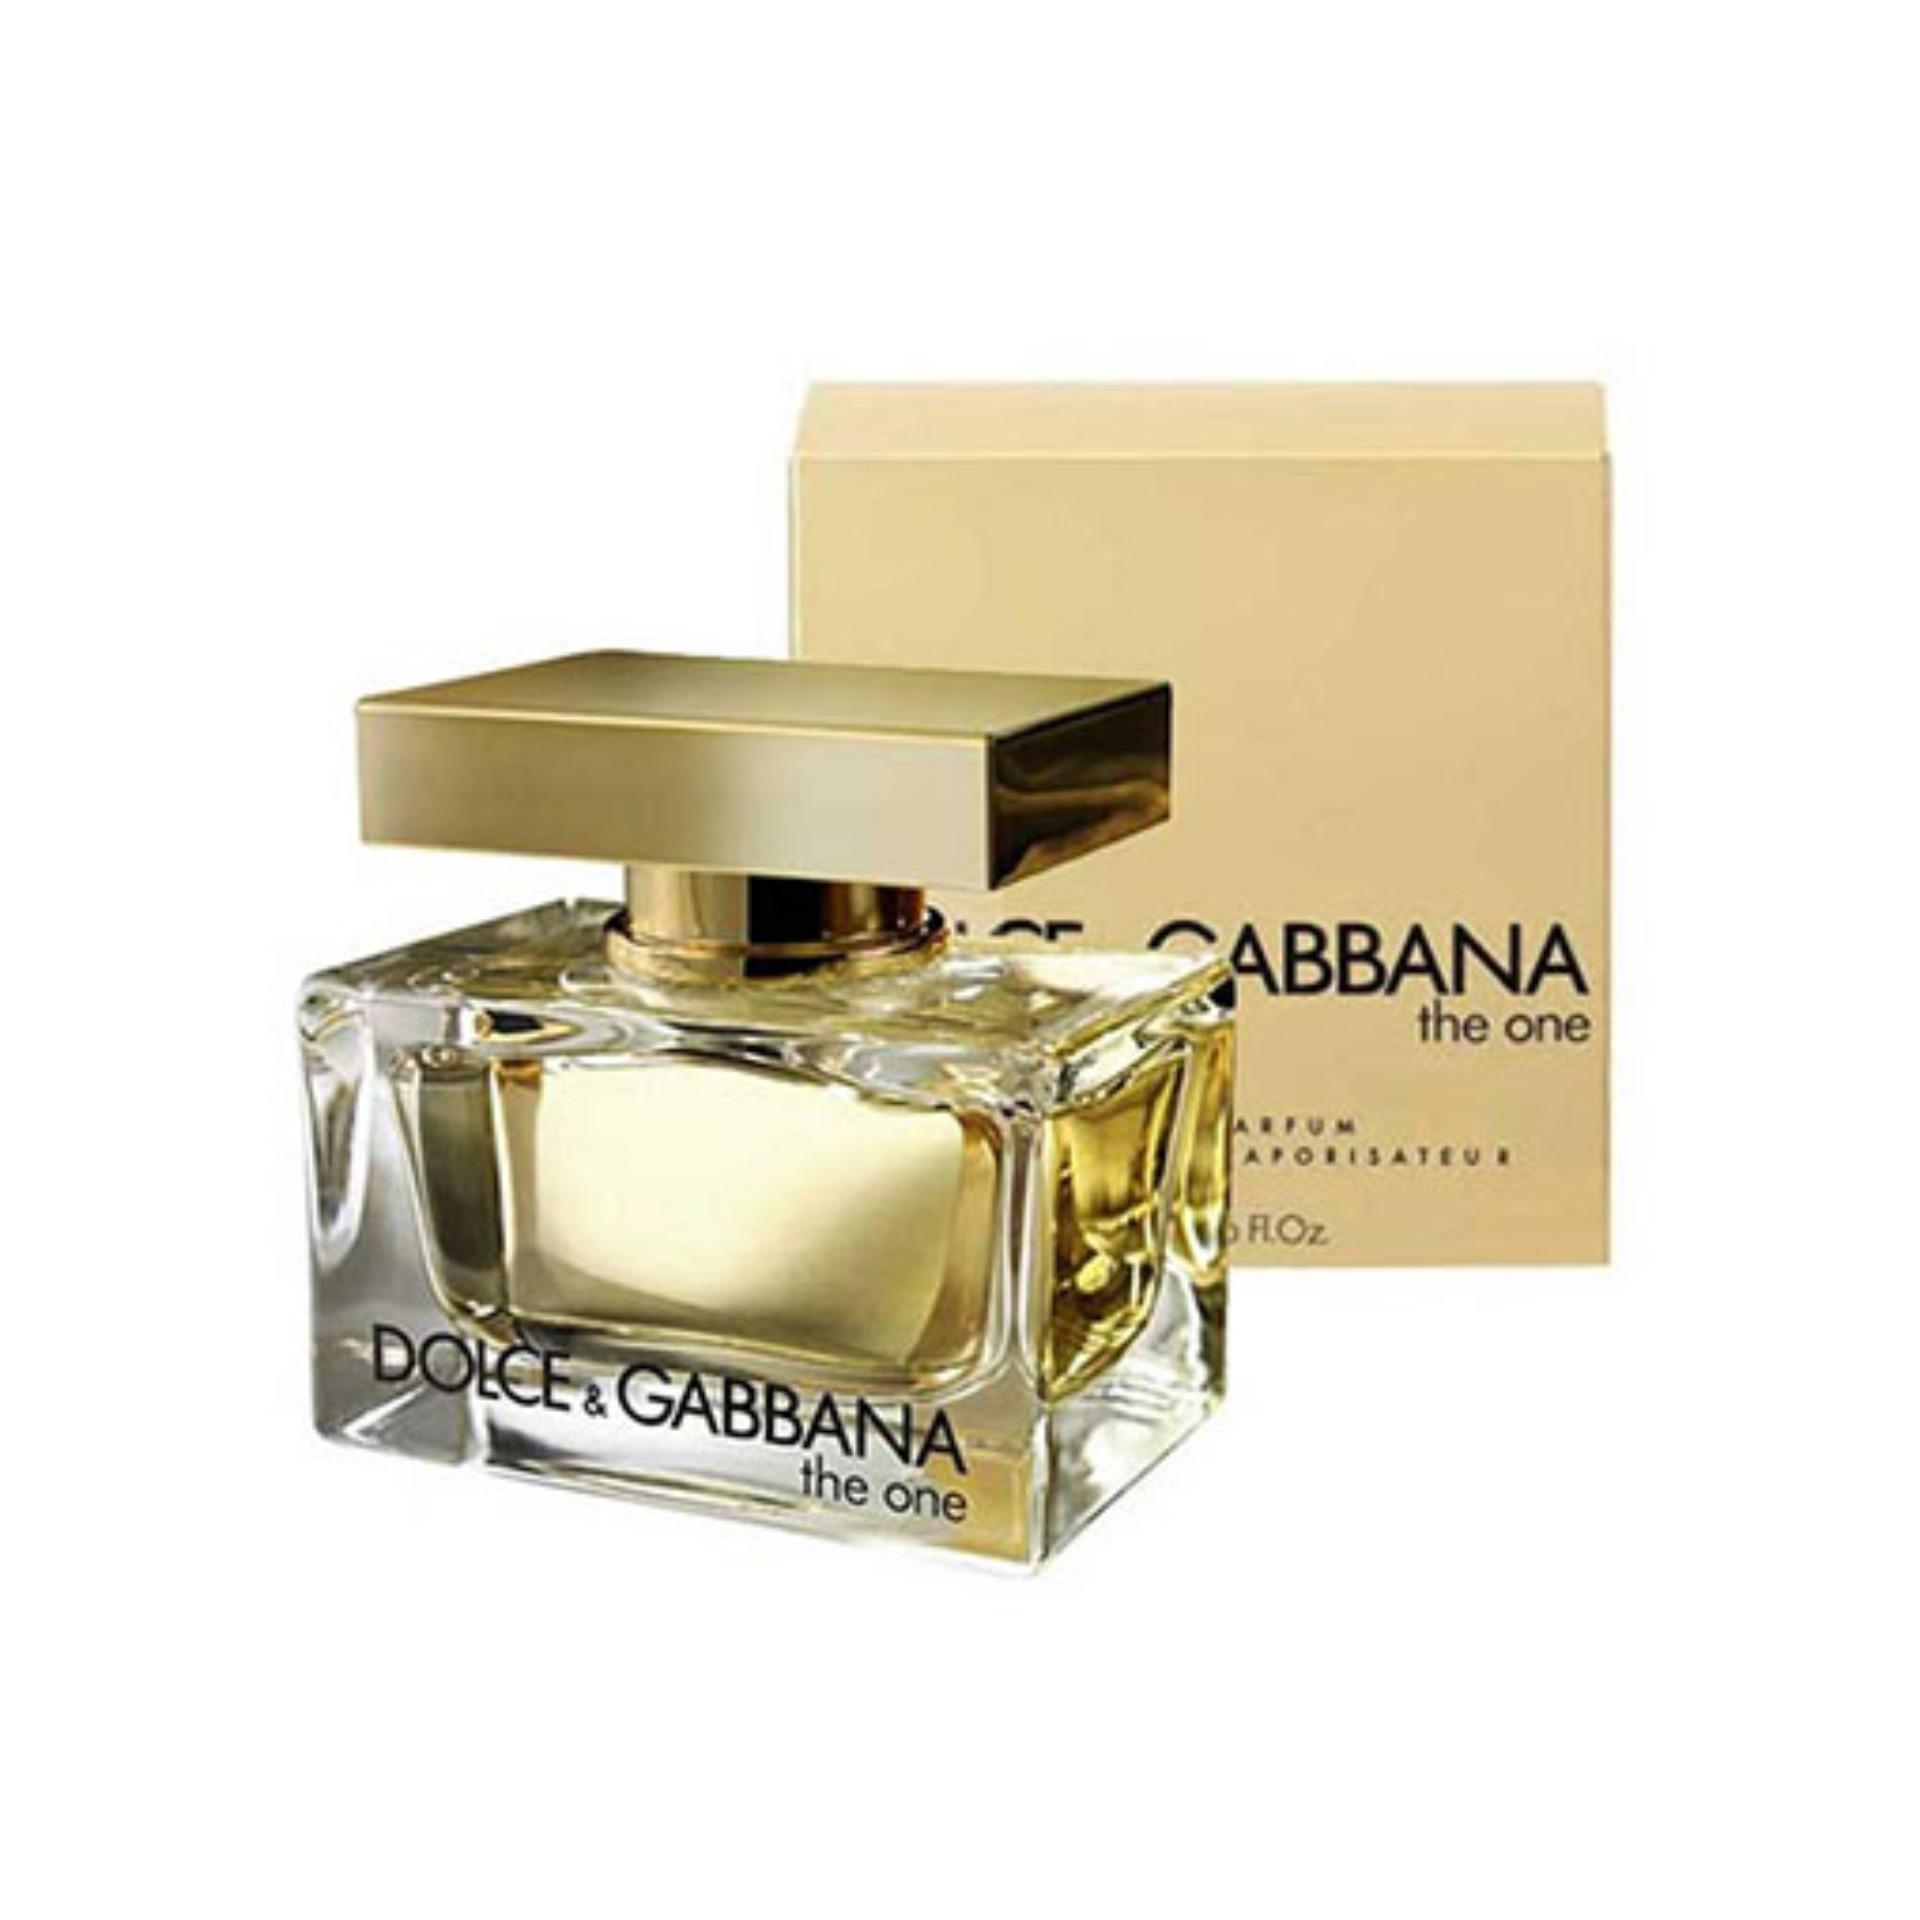 24d269bd75 Dolce and Gabbana Philippines - Dolce and Gabbana Fragrances for ...